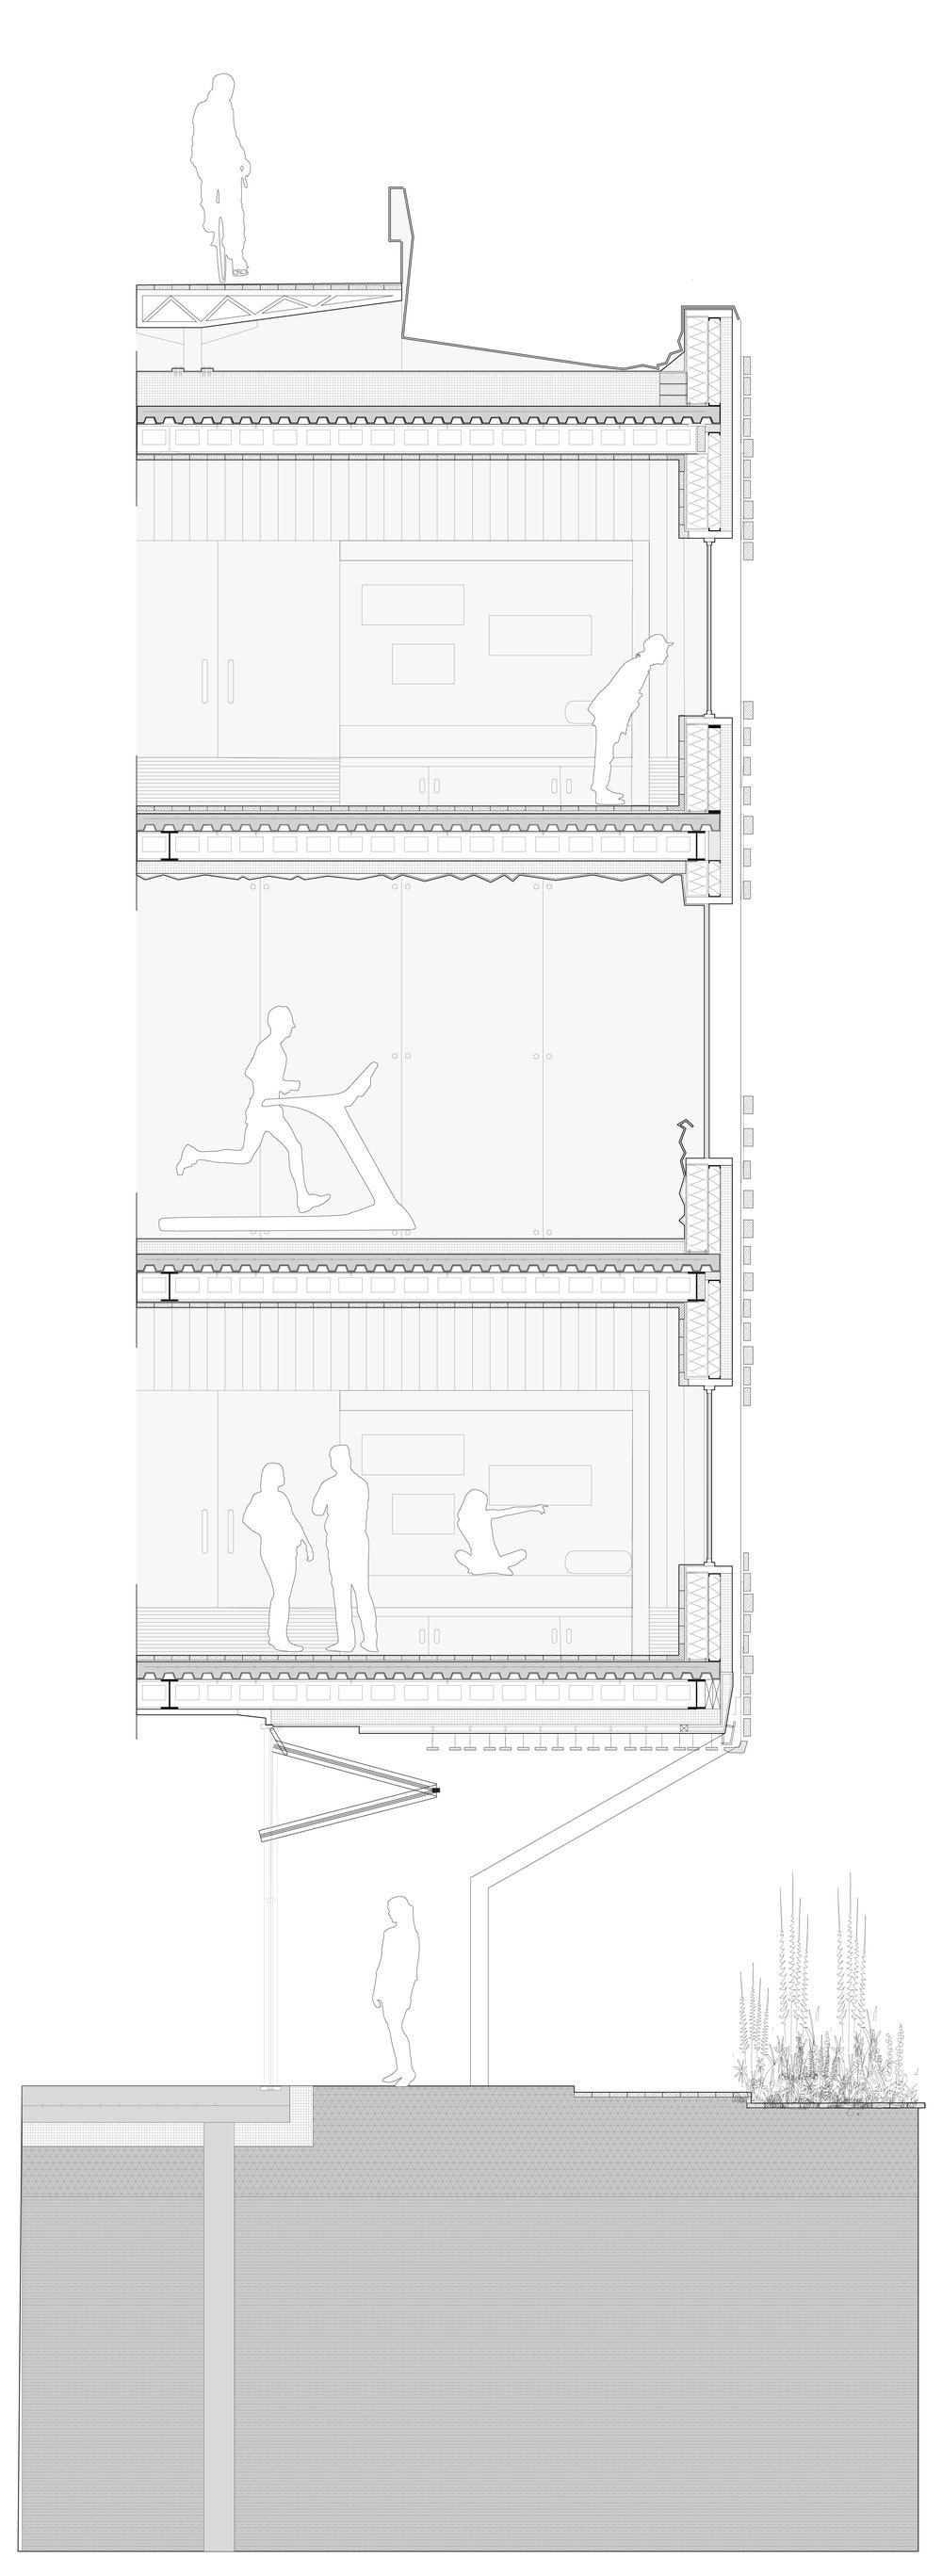 CONSTRUCTED WALL SECTION: PLESS IMAGE TO SEE FULL VIEW